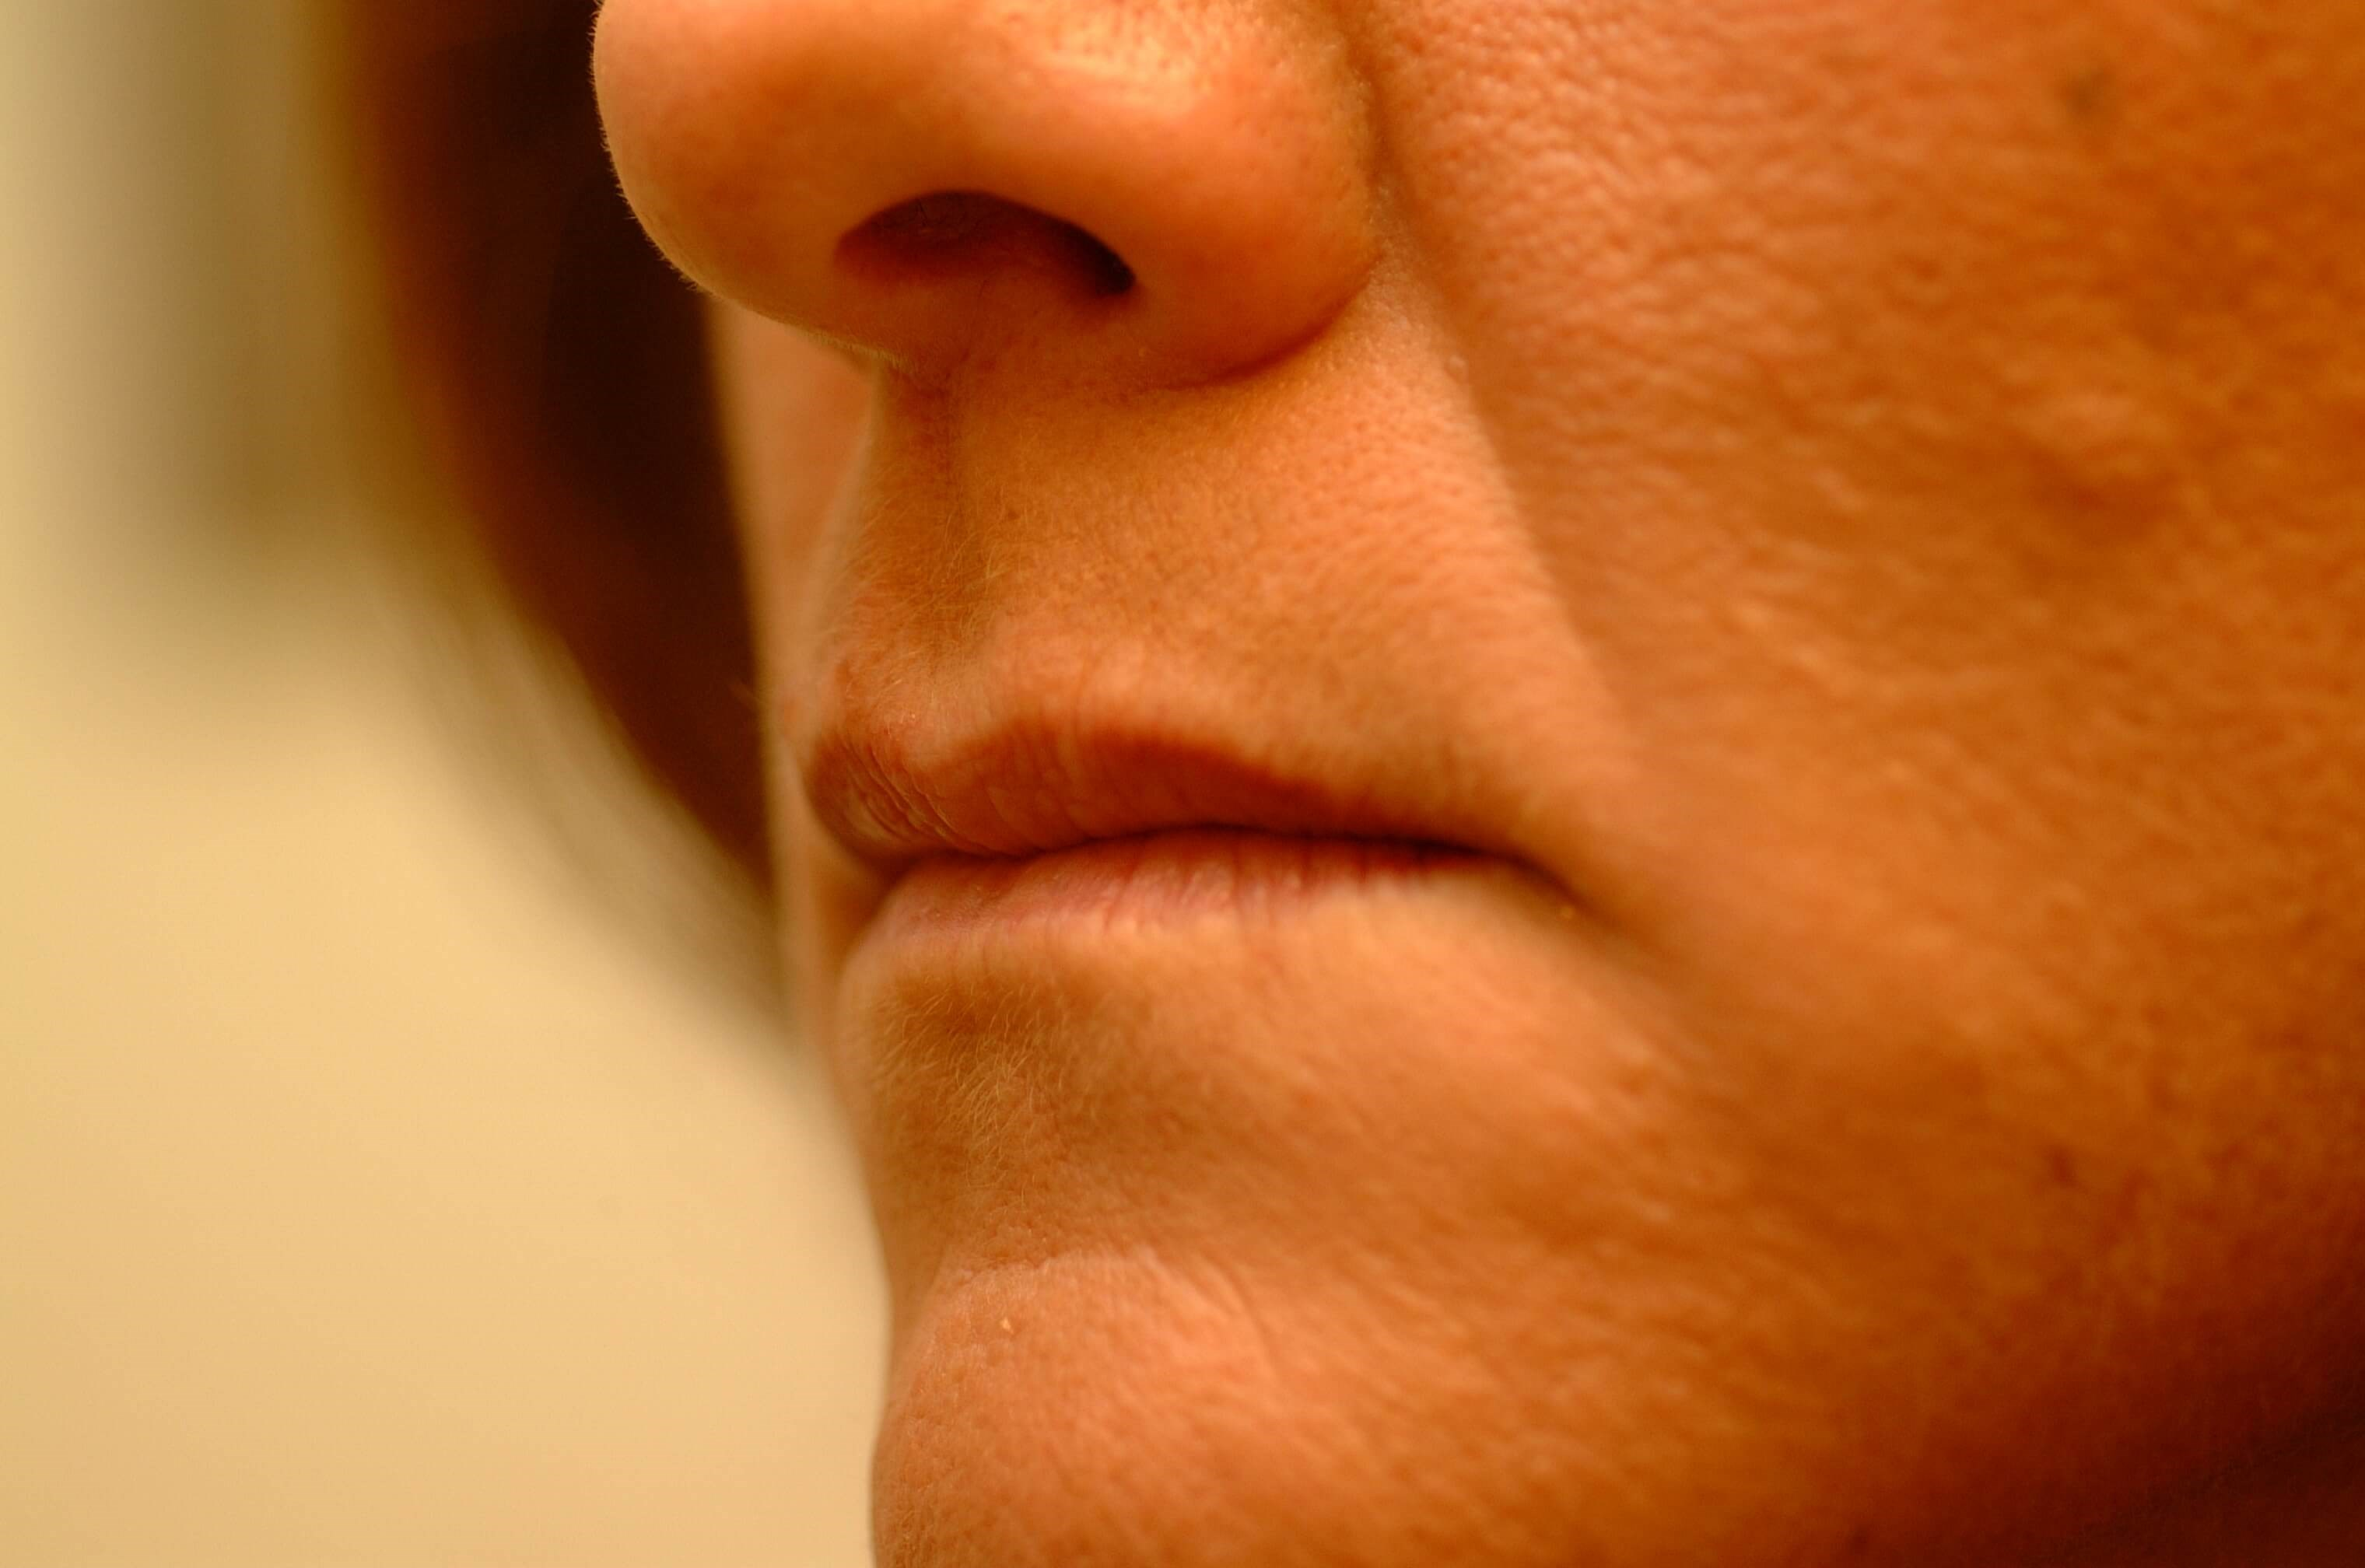 Newport Beach Filler/Botox Oblique View Before